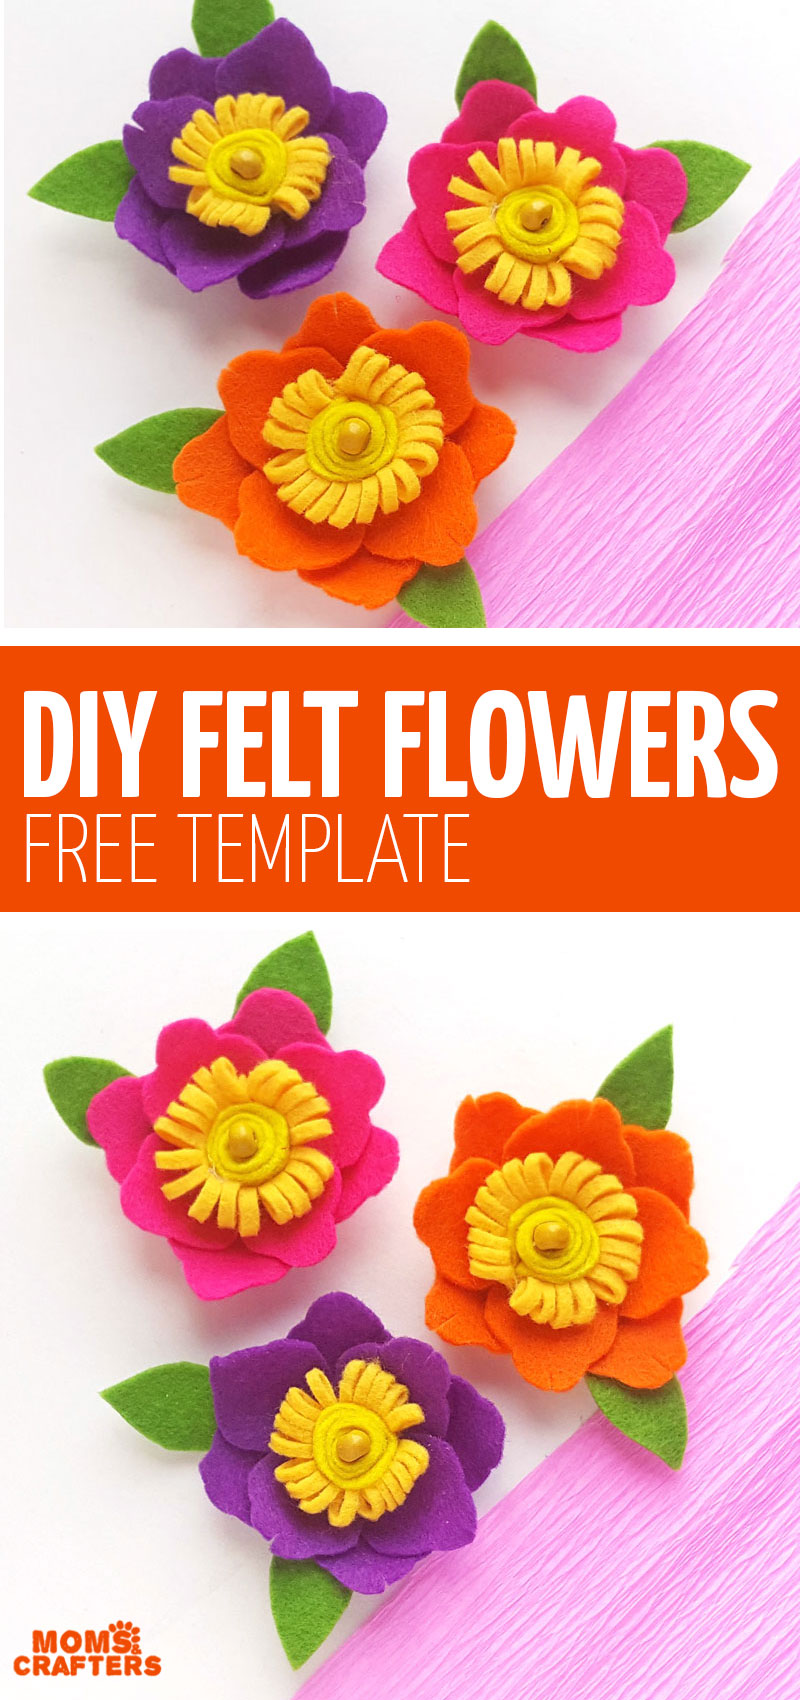 Click here to make some really cool DIY felt flowers with free printable templates! This fun spring craft for teens is really simple and easy to make!